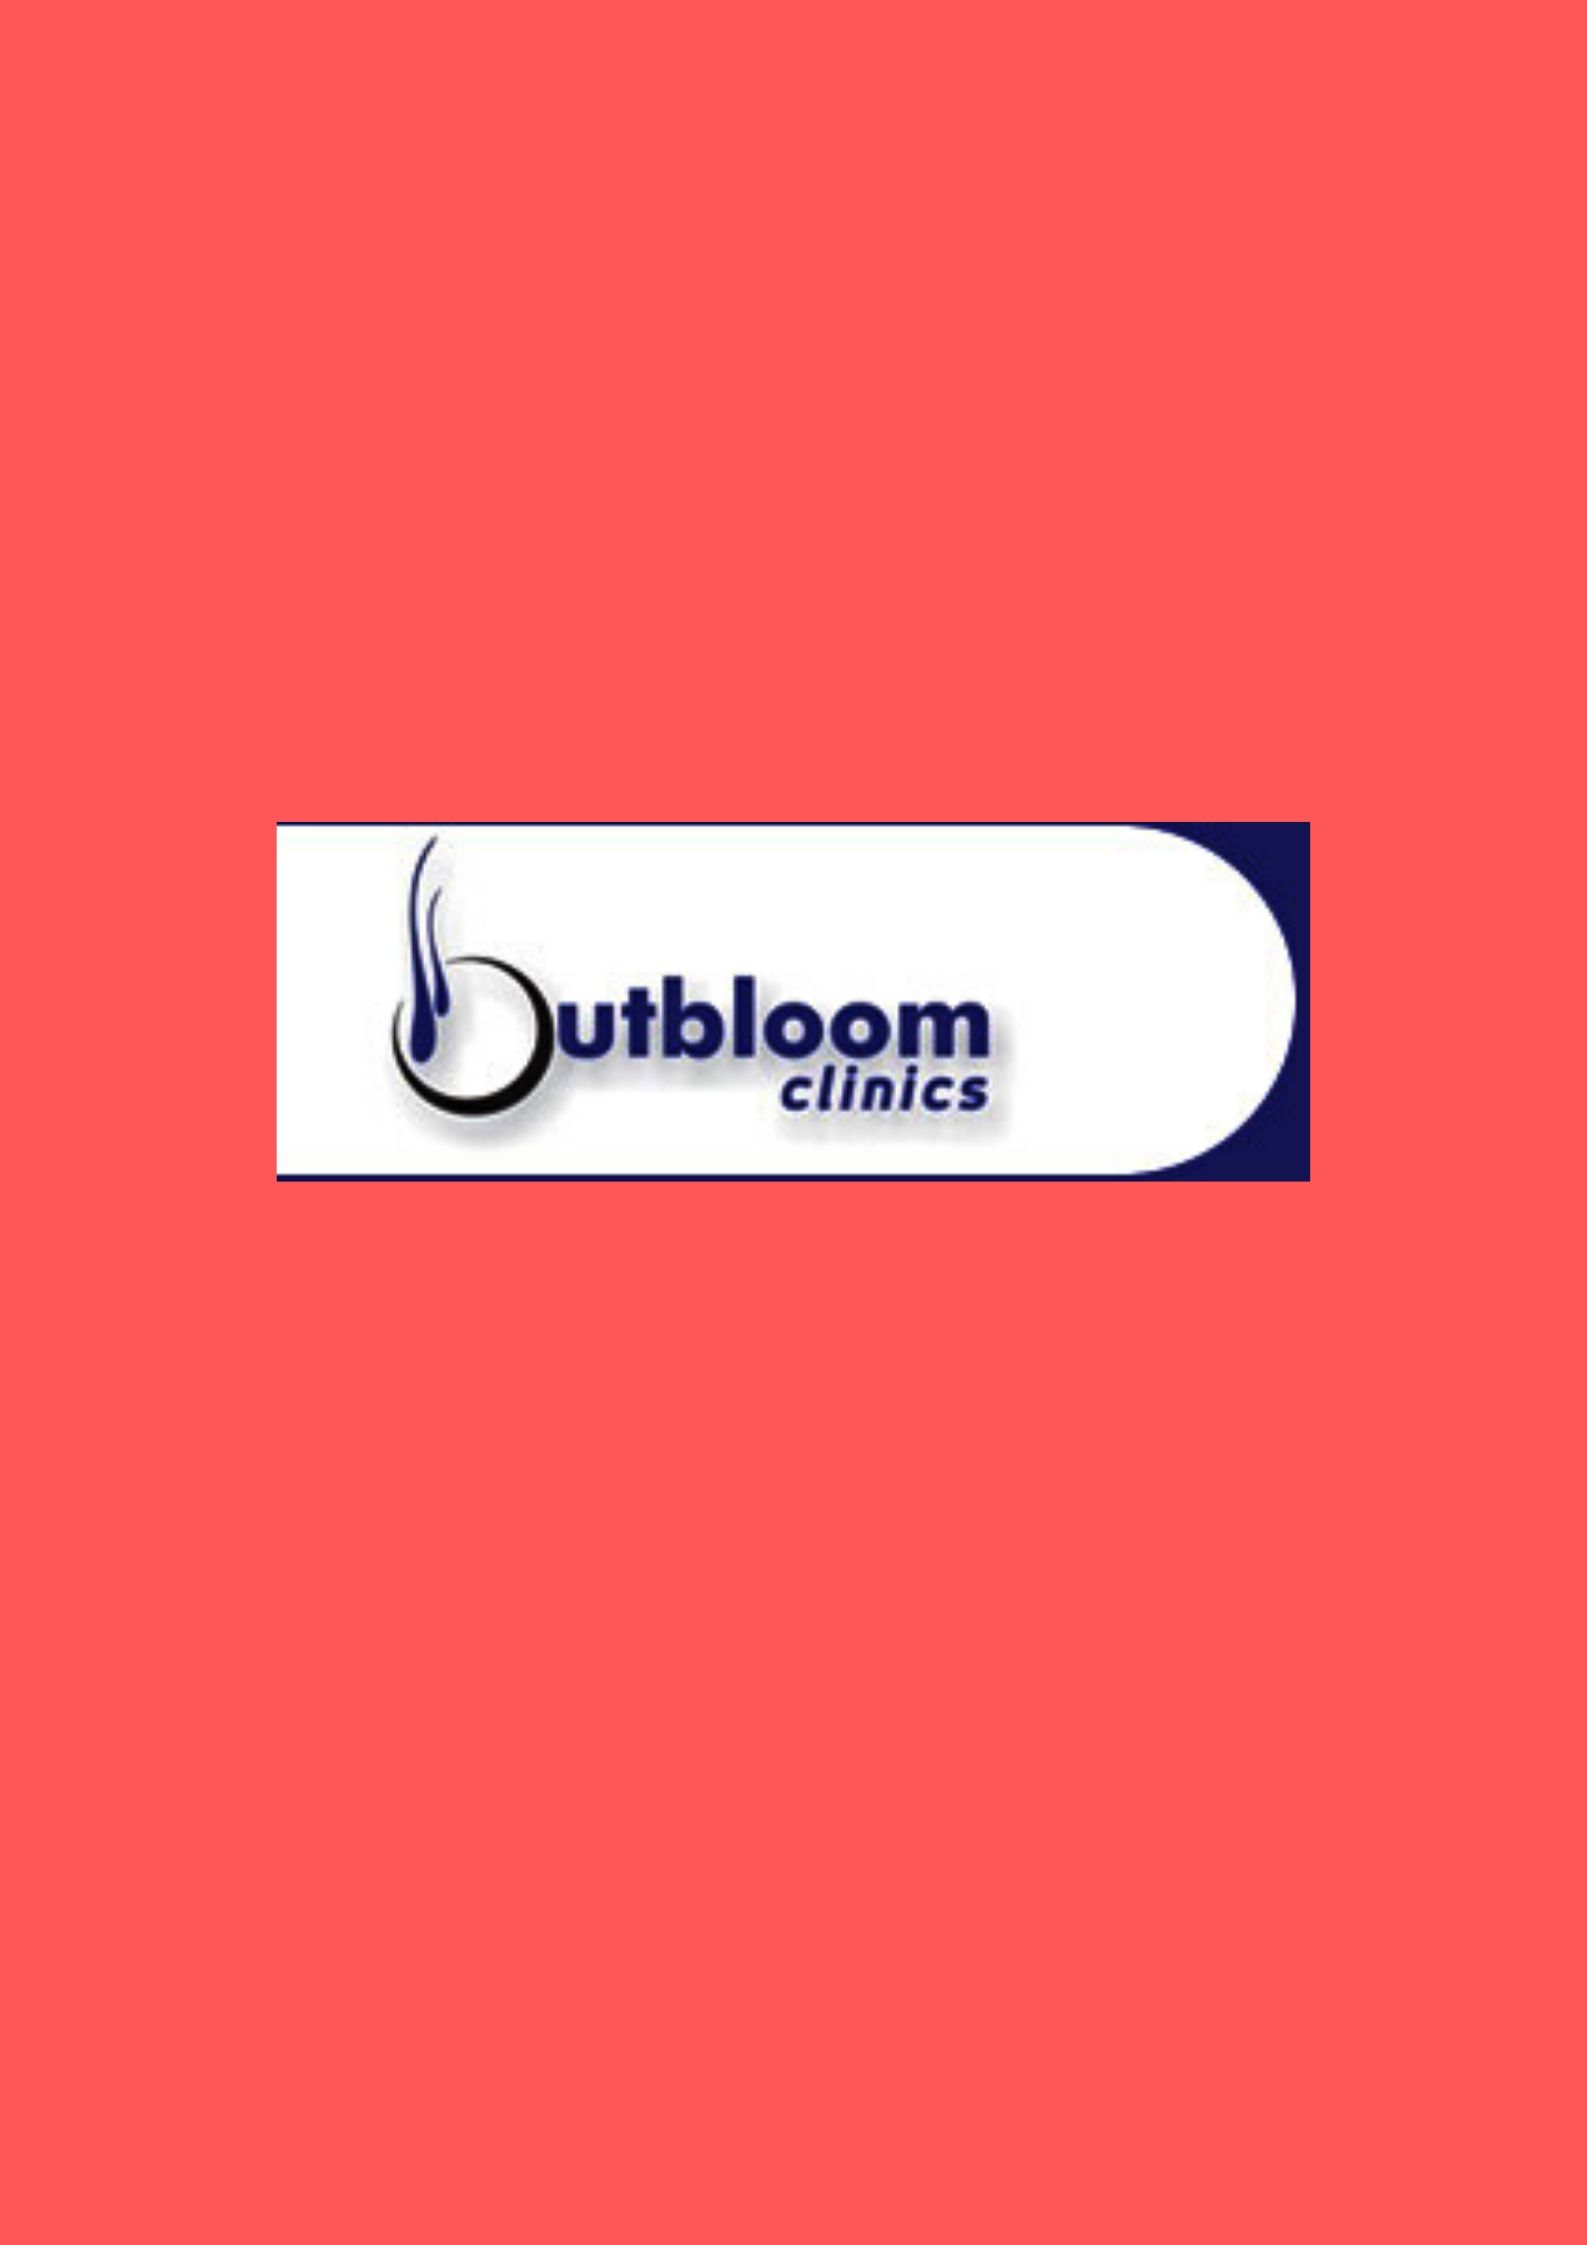 Outbloom clinics